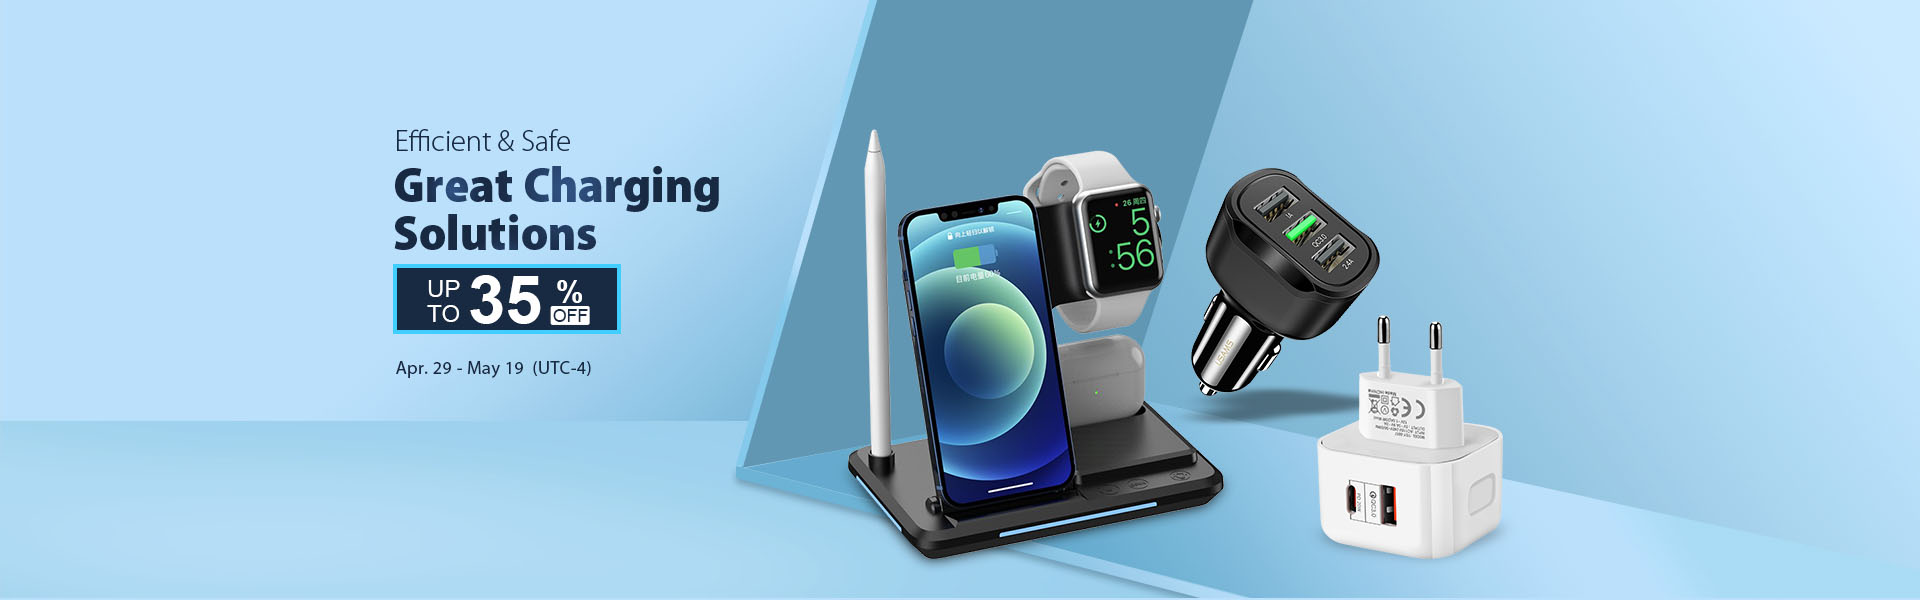 Up to 35% off on Great Charging Solutions